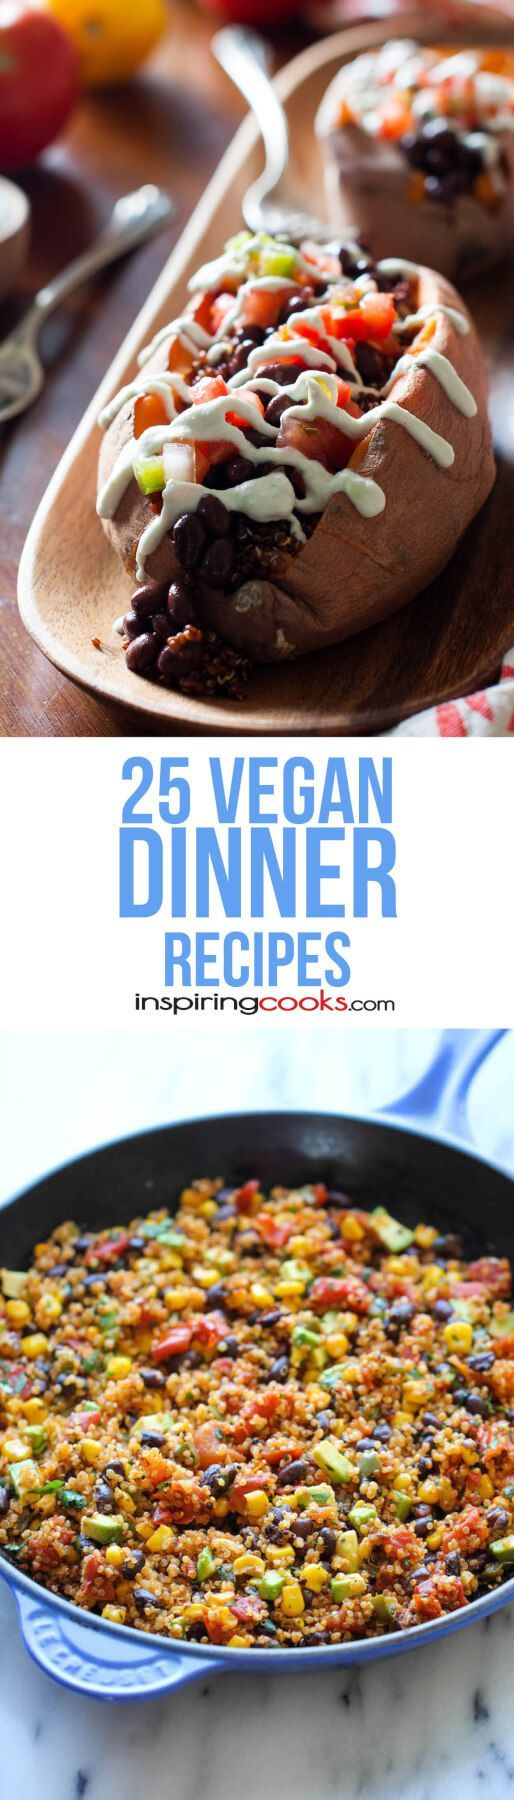 The 25 Best Vegan Dinner Main Dish Recipes